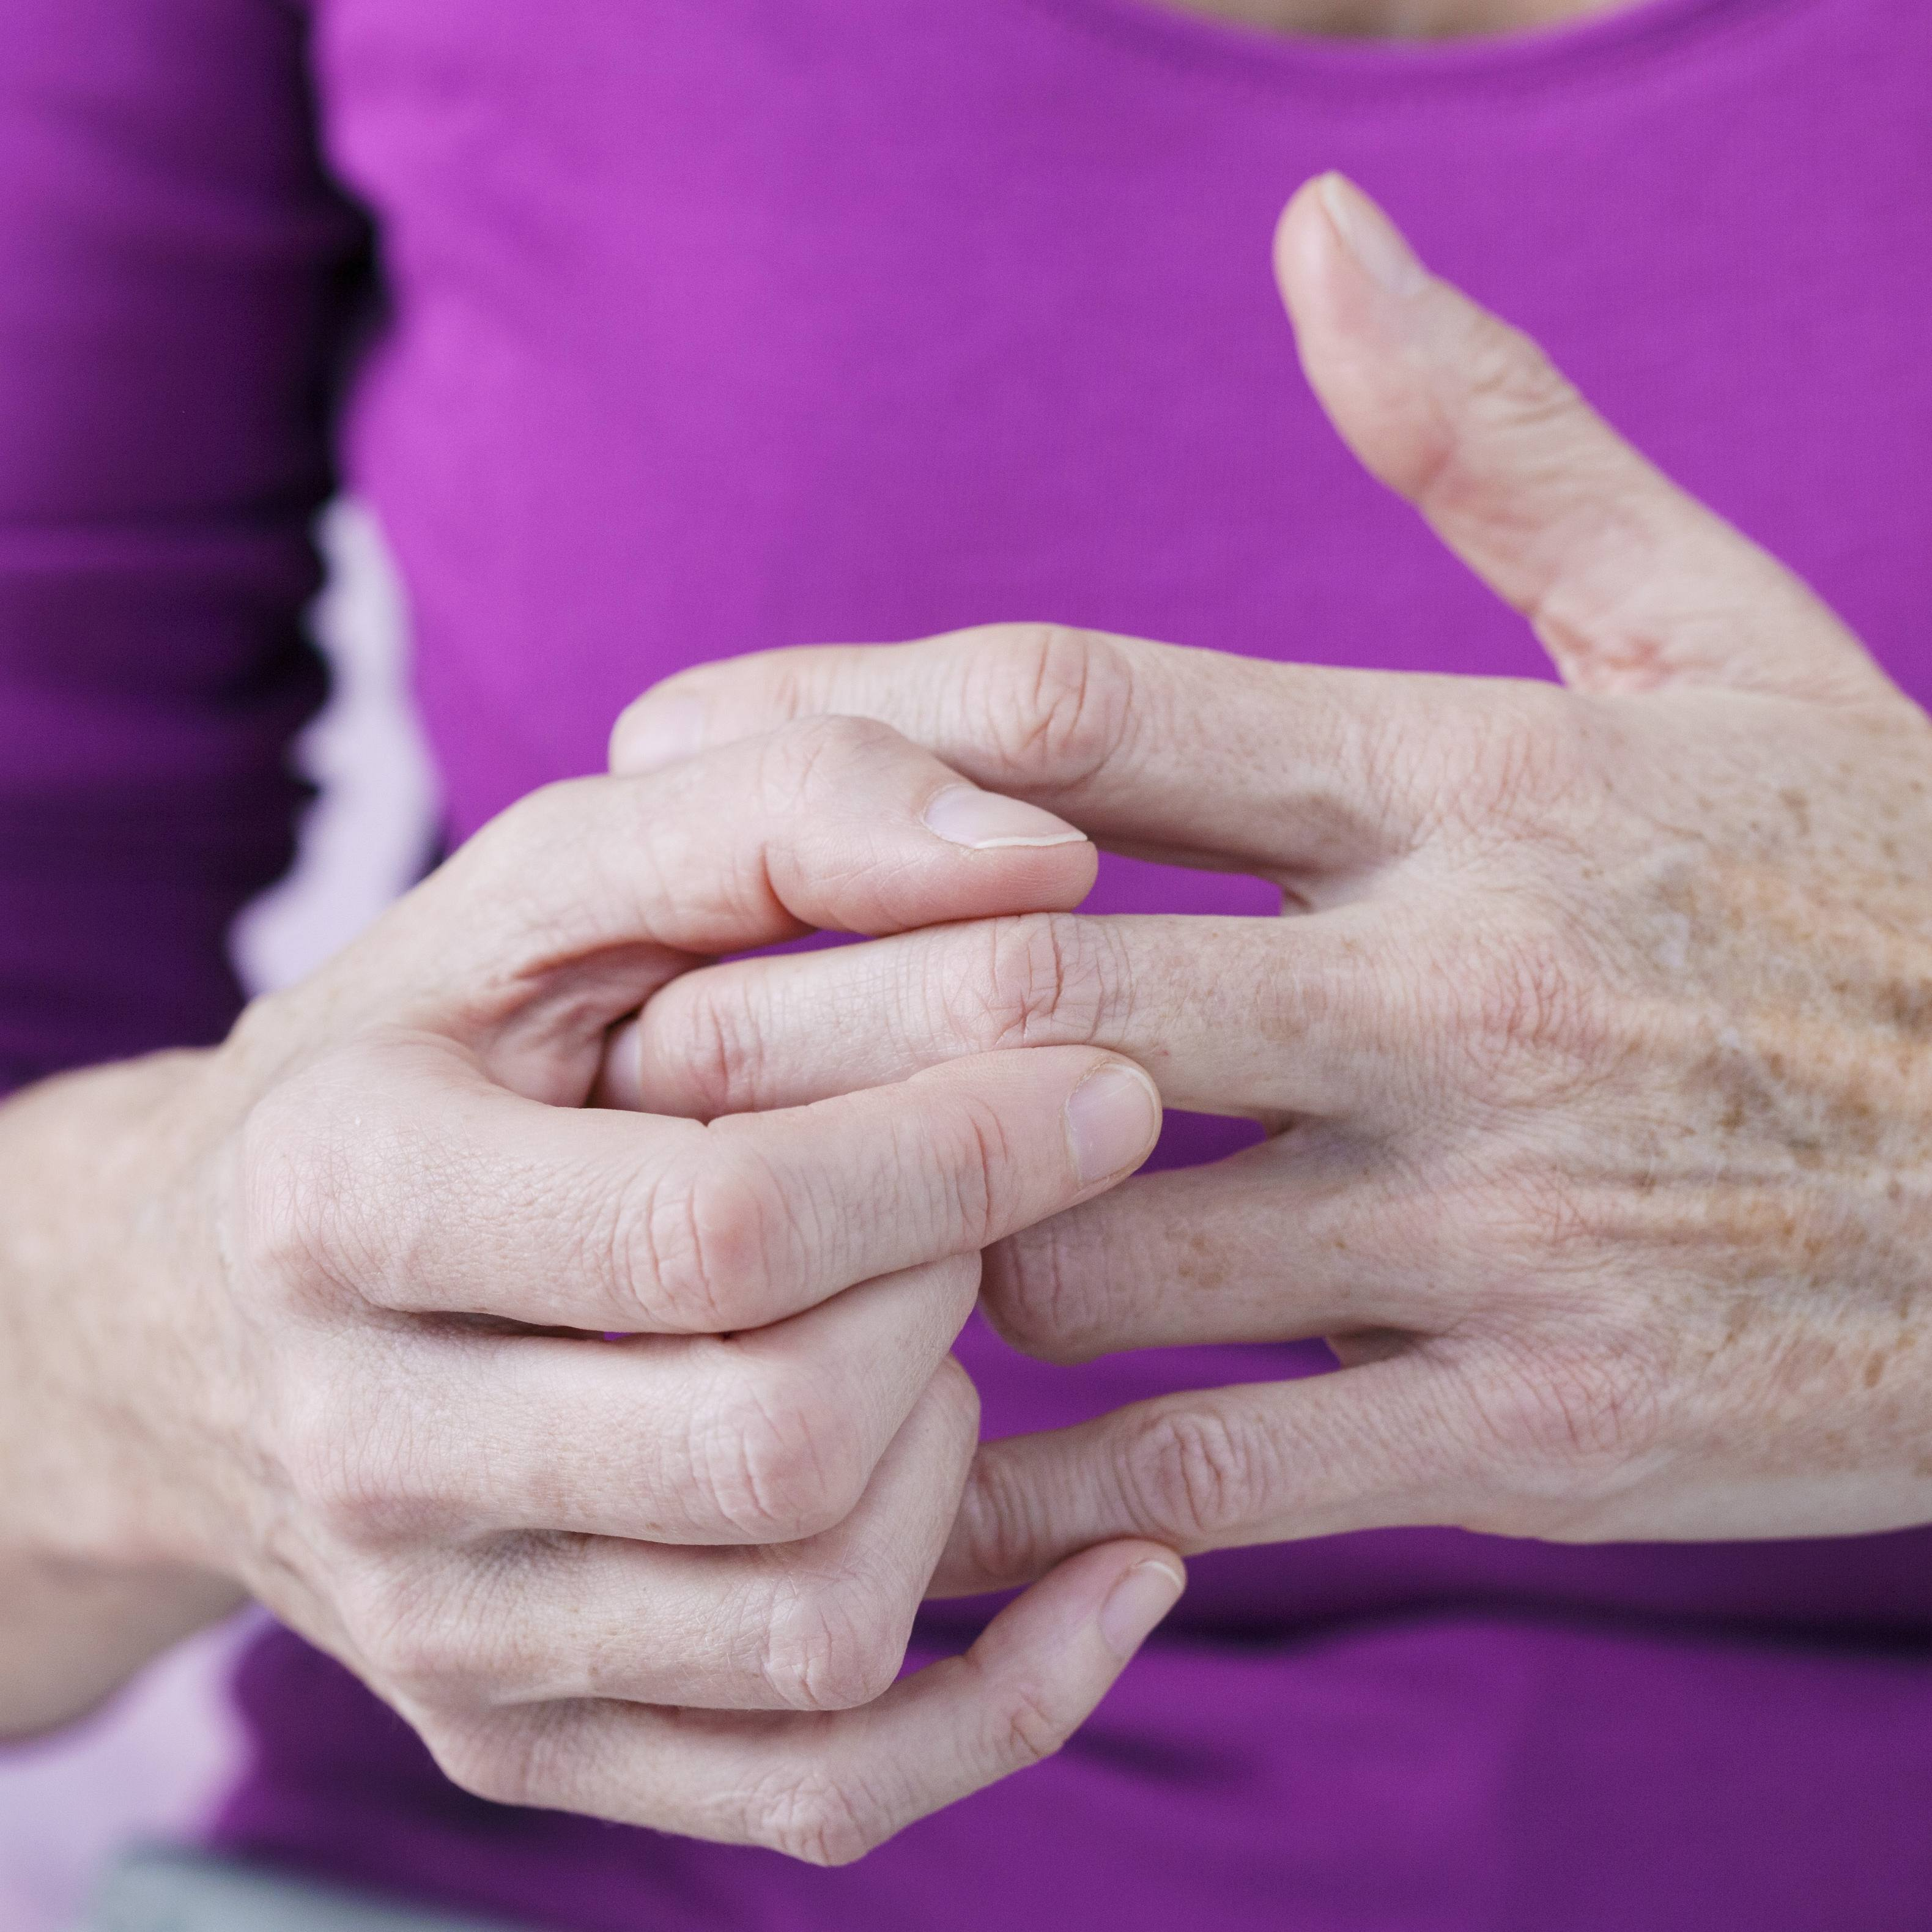 close up of a middle aged white woman's hands as she rubs her fingers and joints that look painful with arthritis